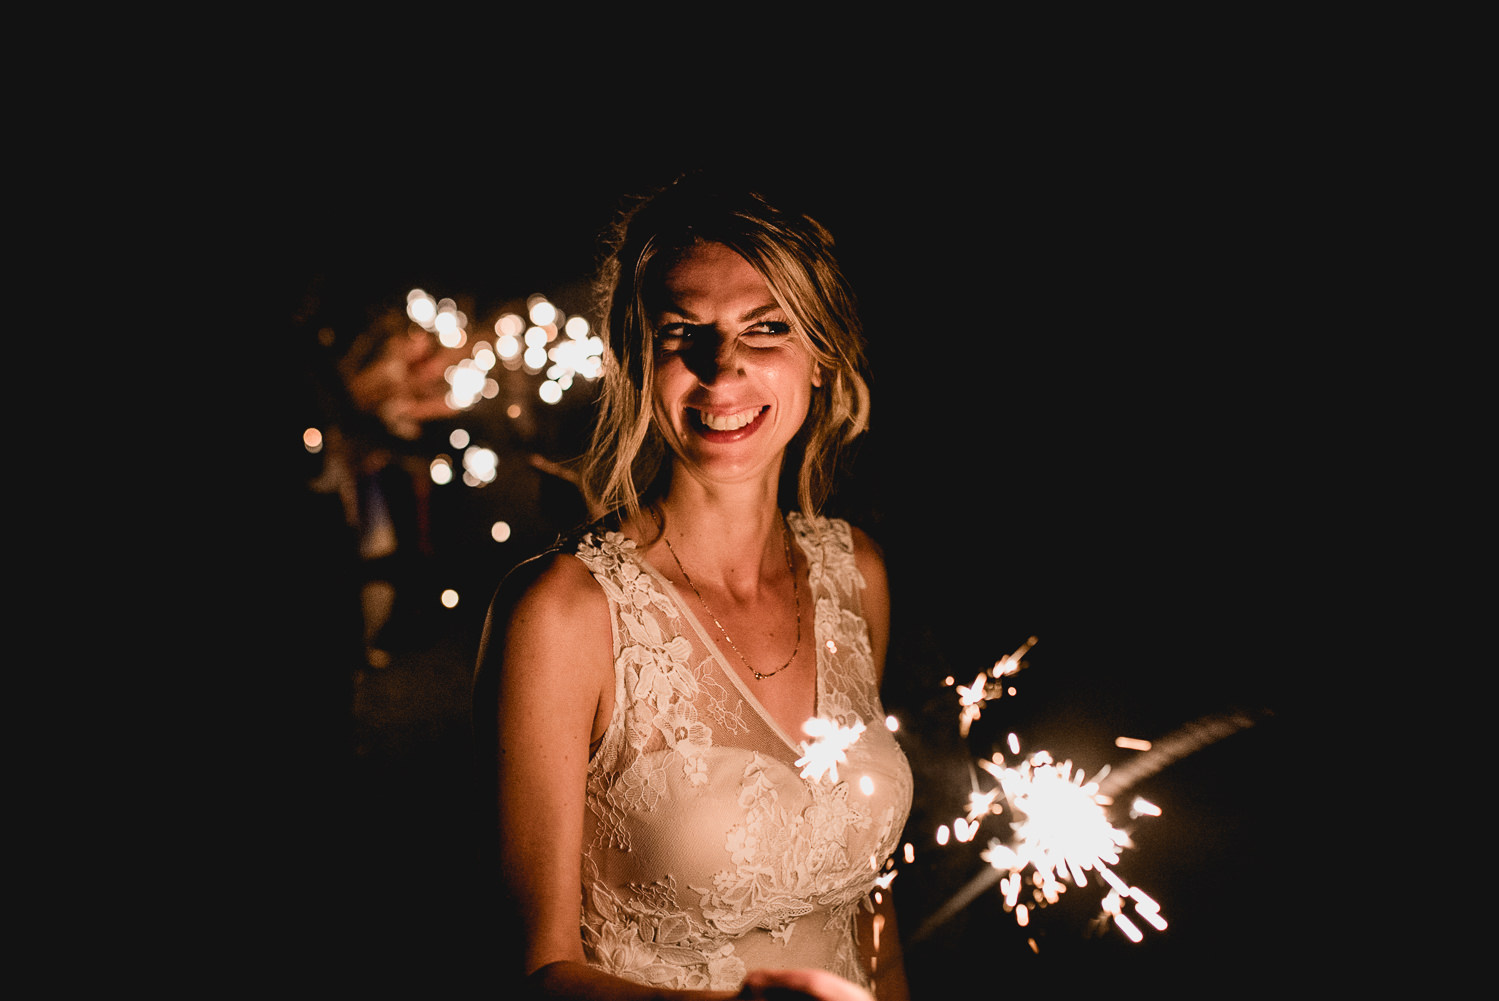 Wedding sparkler bride